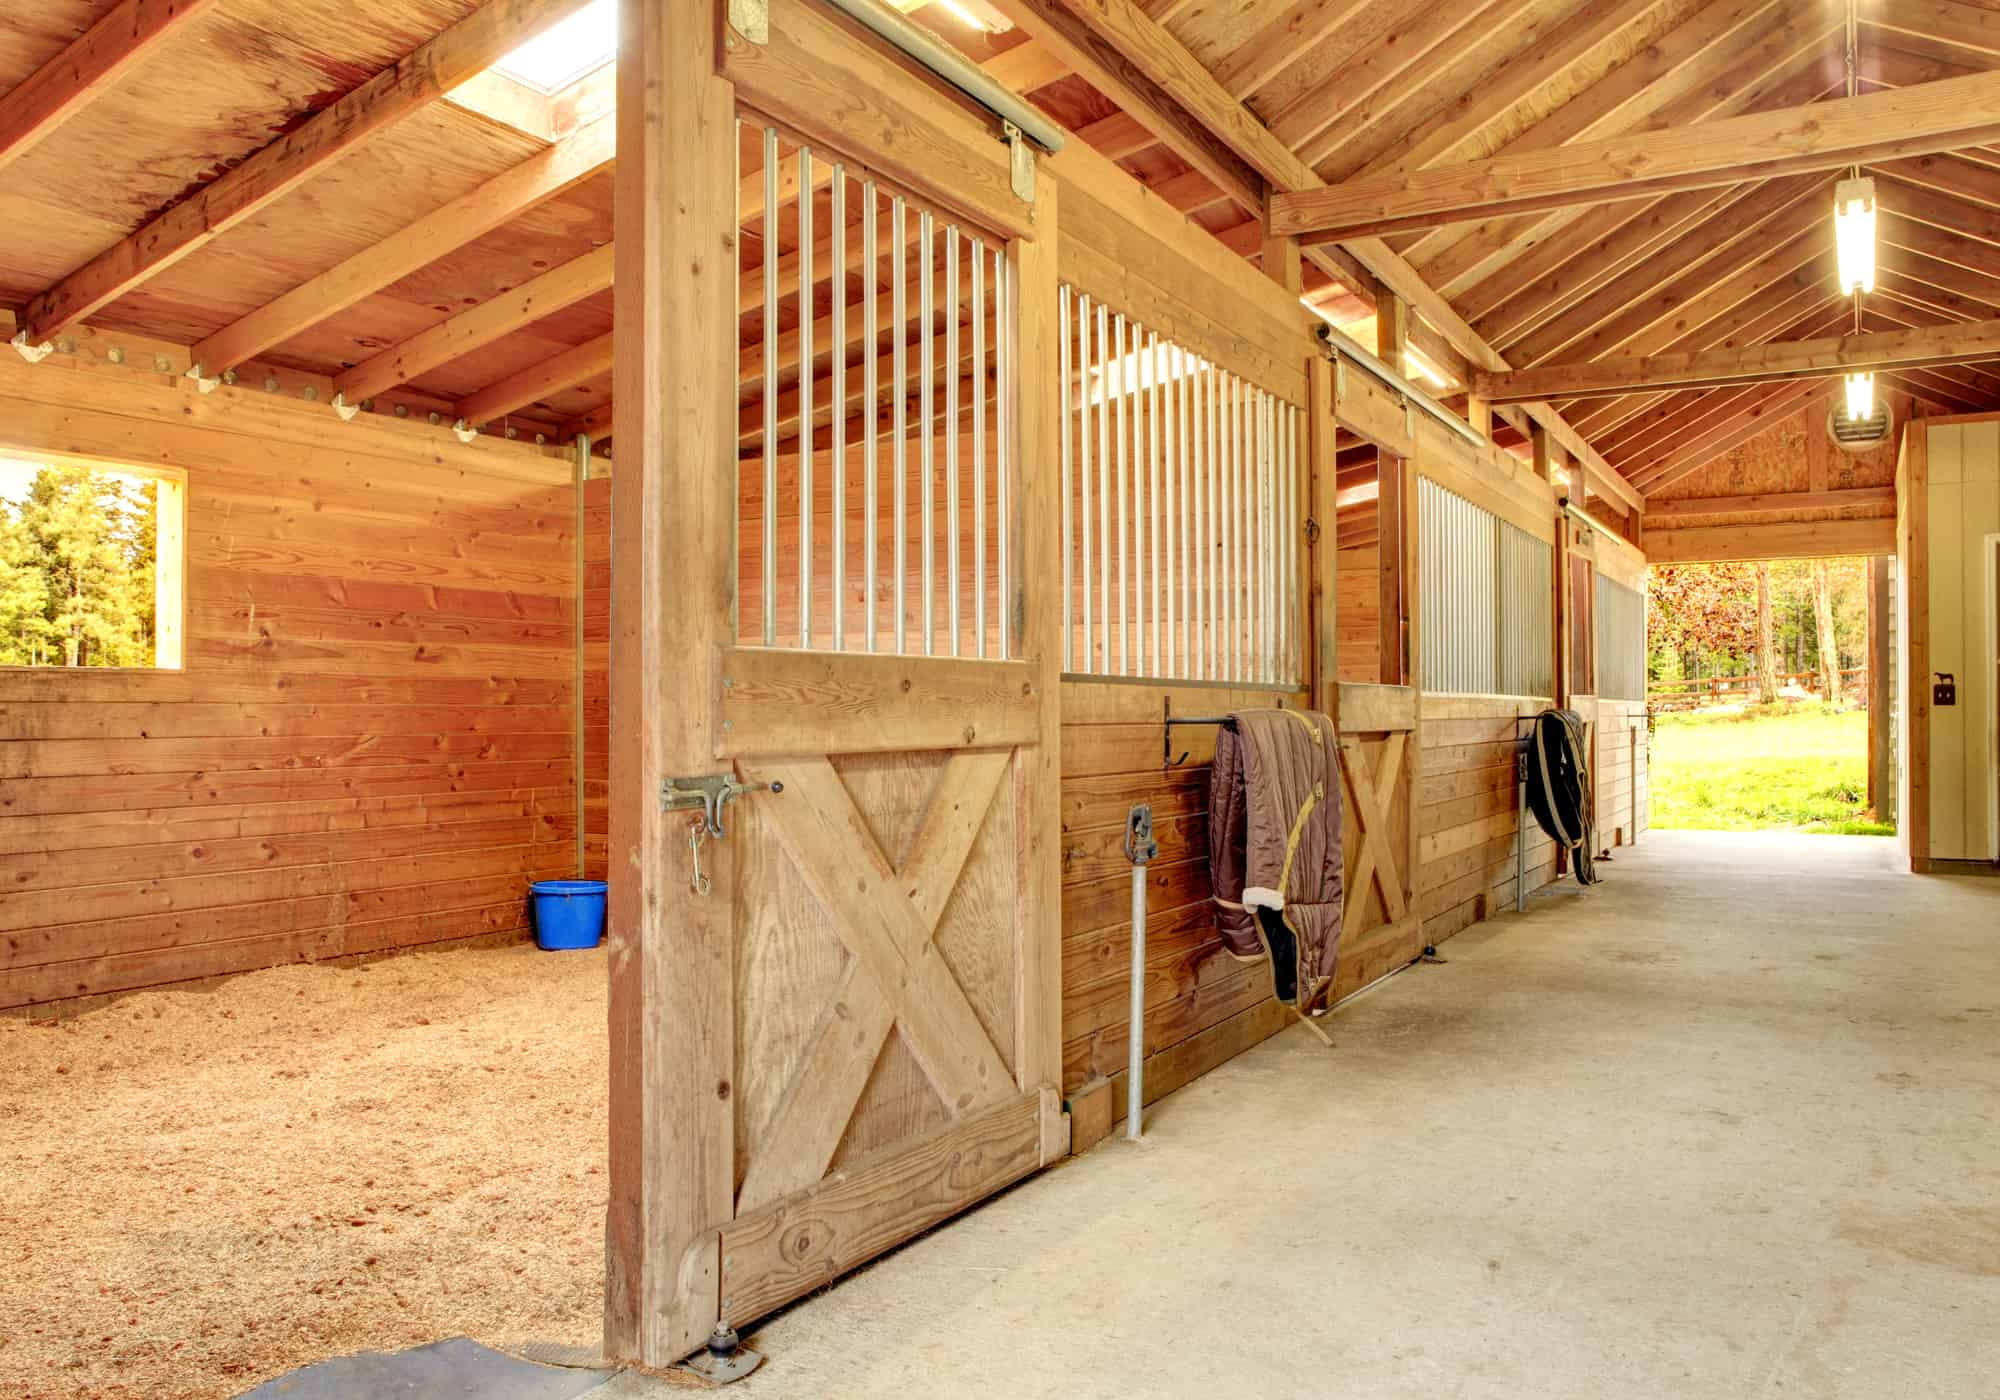 8 Easy Steps to Clean a Horse Stall